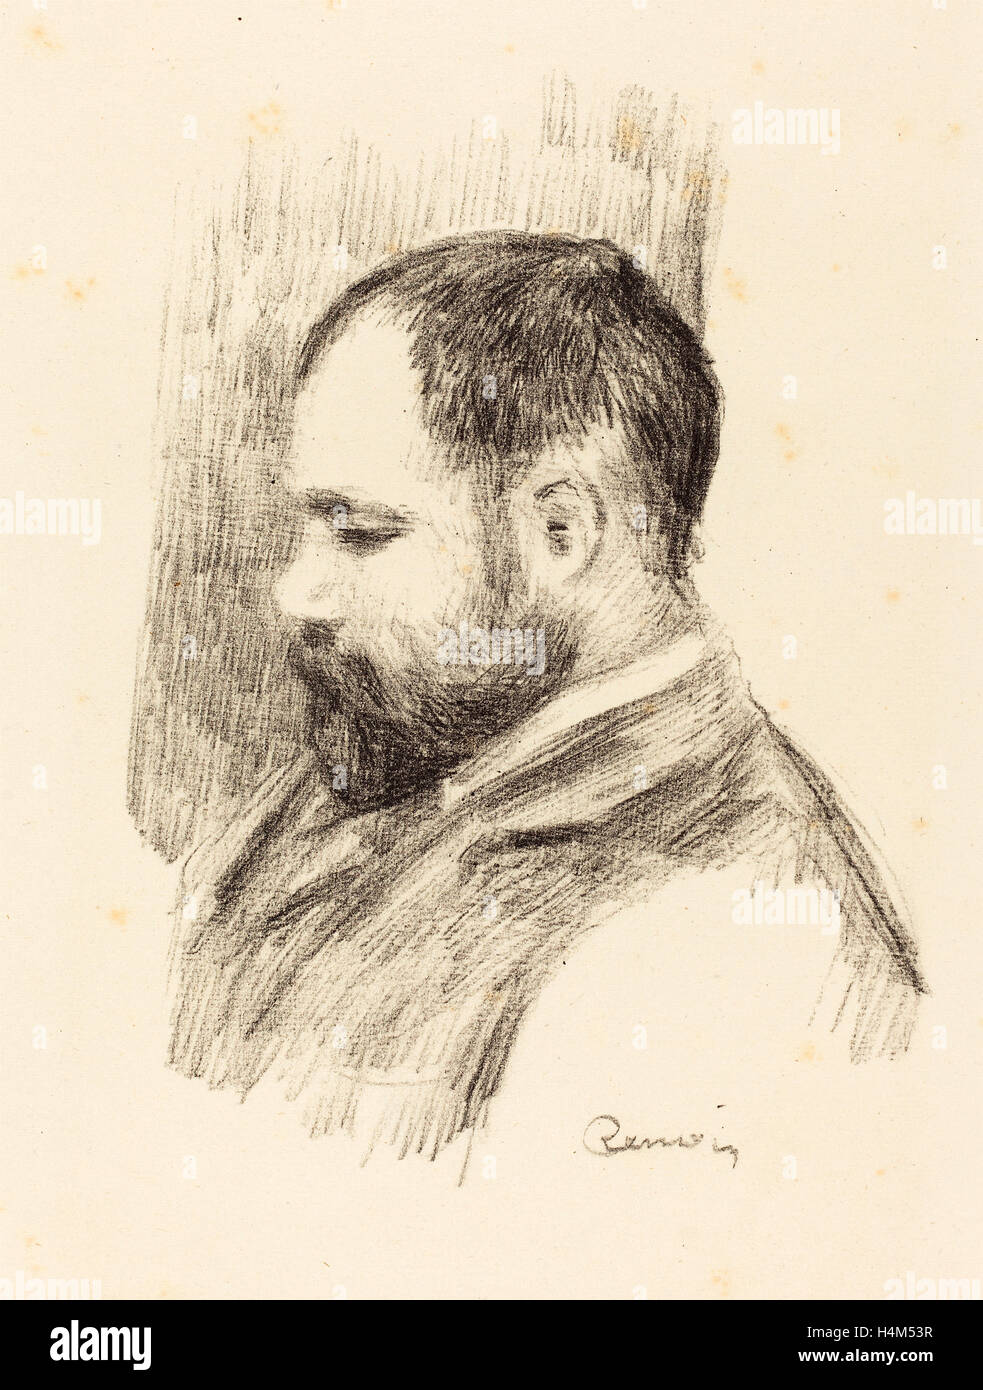 Auguste Renoir, Ambroise Vollard, French, 1841 - 1919, 1904, lithograph - Stock Image